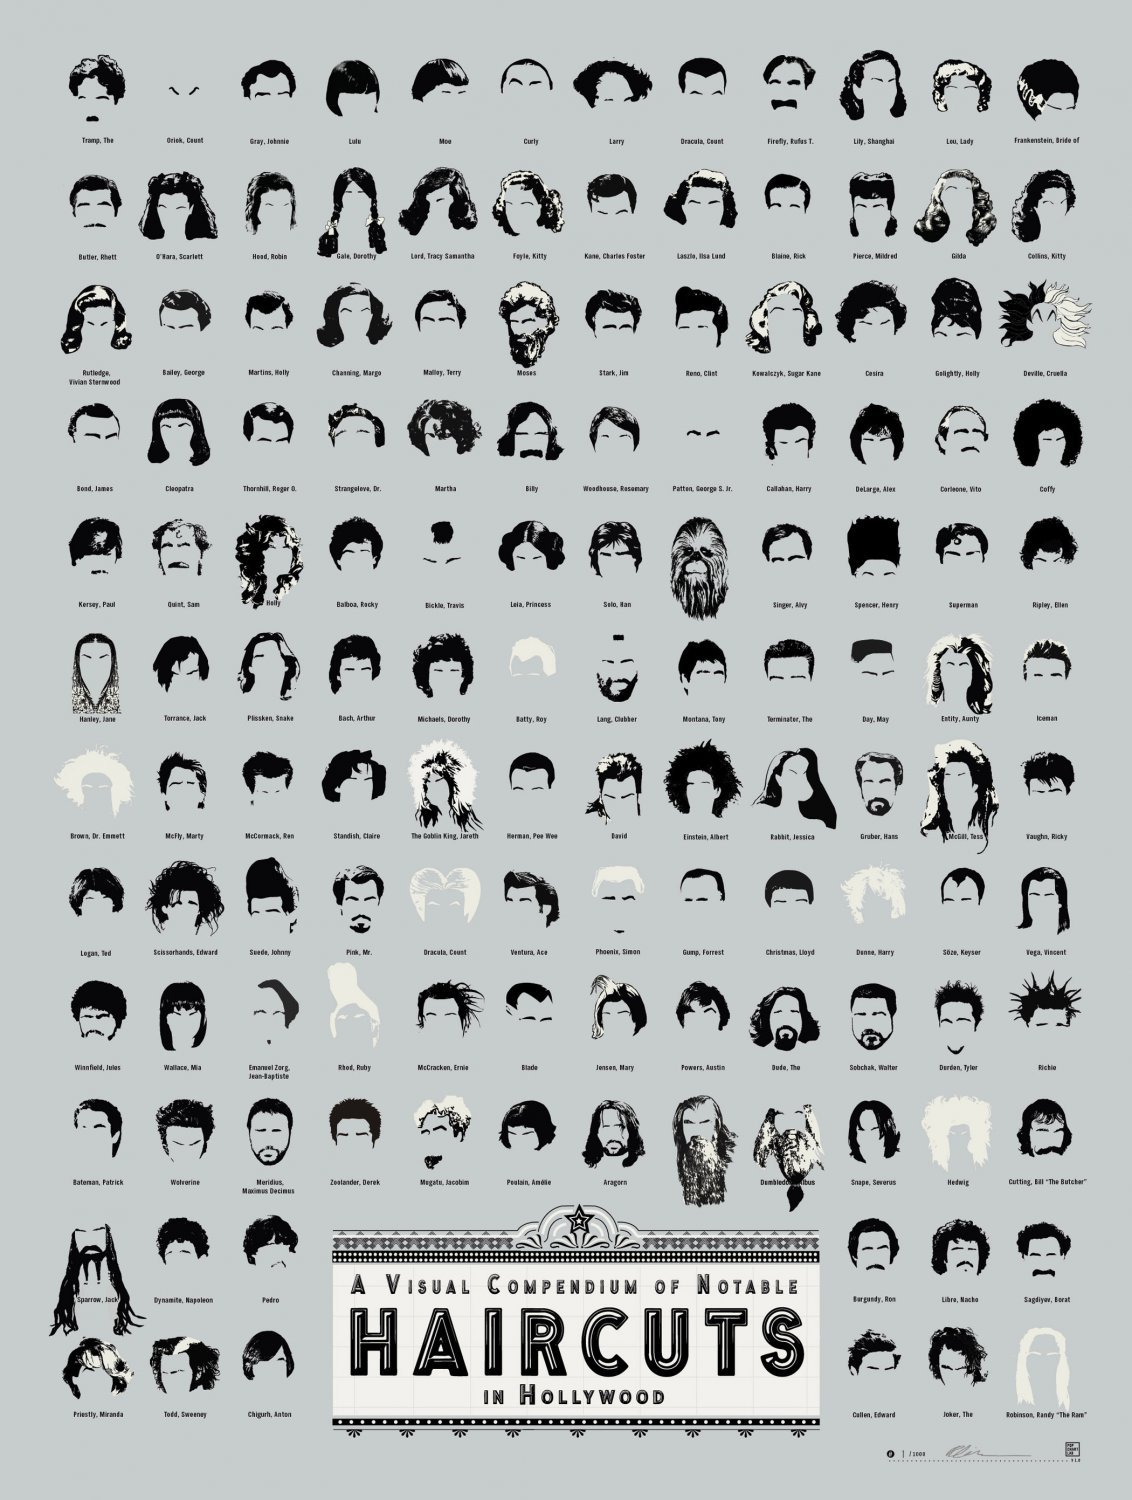 A Visual Compendium of Notable Haircuts in Hollywood Chart   18x28 inches Poster Print